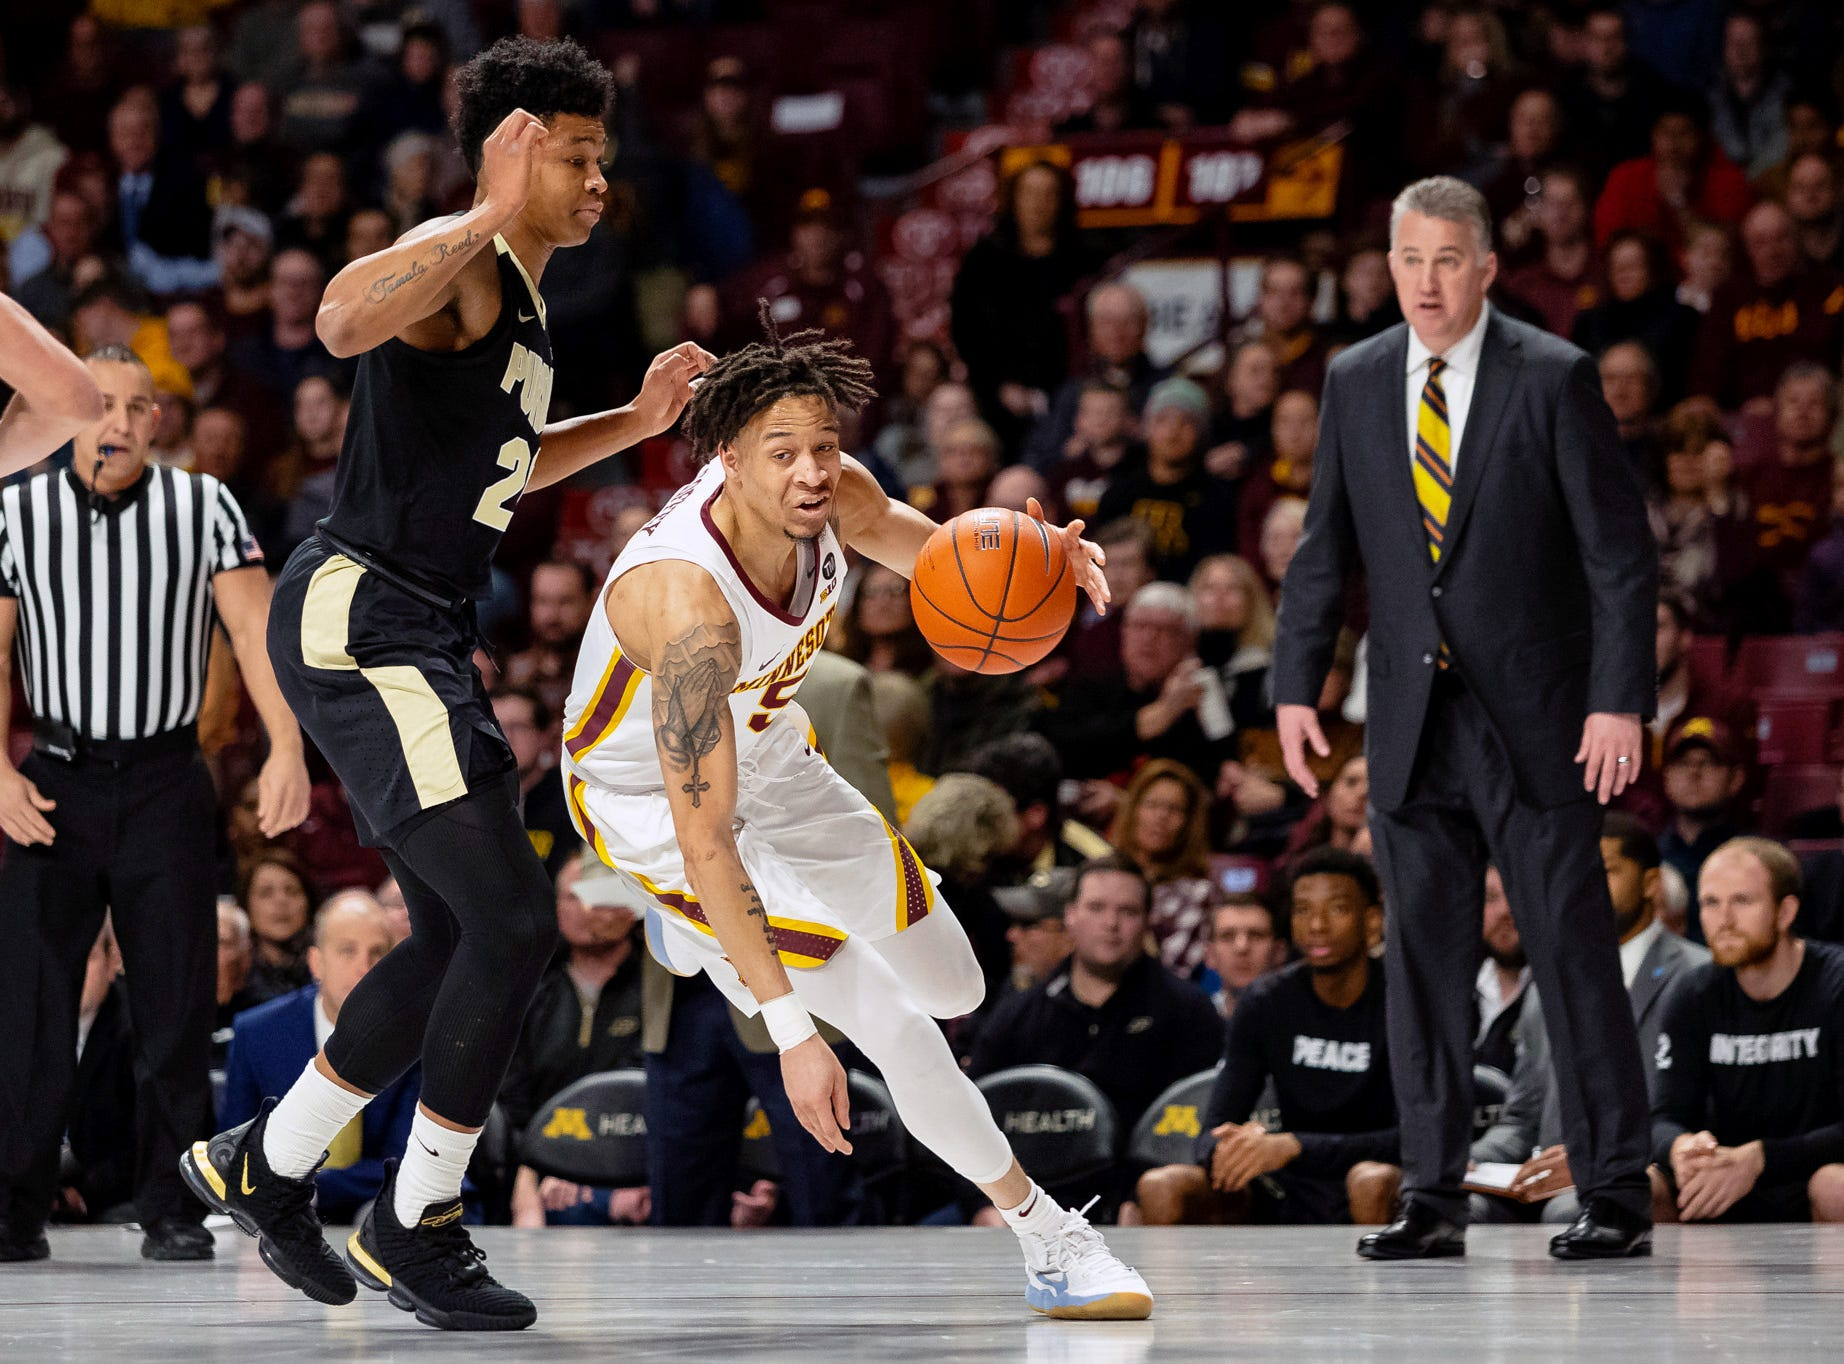 Mar 5, 2019; Minneapolis, MN, USA; Minnesota Gophers guard Amir Coffey (5) drives to the basket as Purdue Boilermakers guard Nojel Eastern (20) defends during the first half at Williams Arena. Mandatory Credit: Harrison Barden-USA TODAY Sports